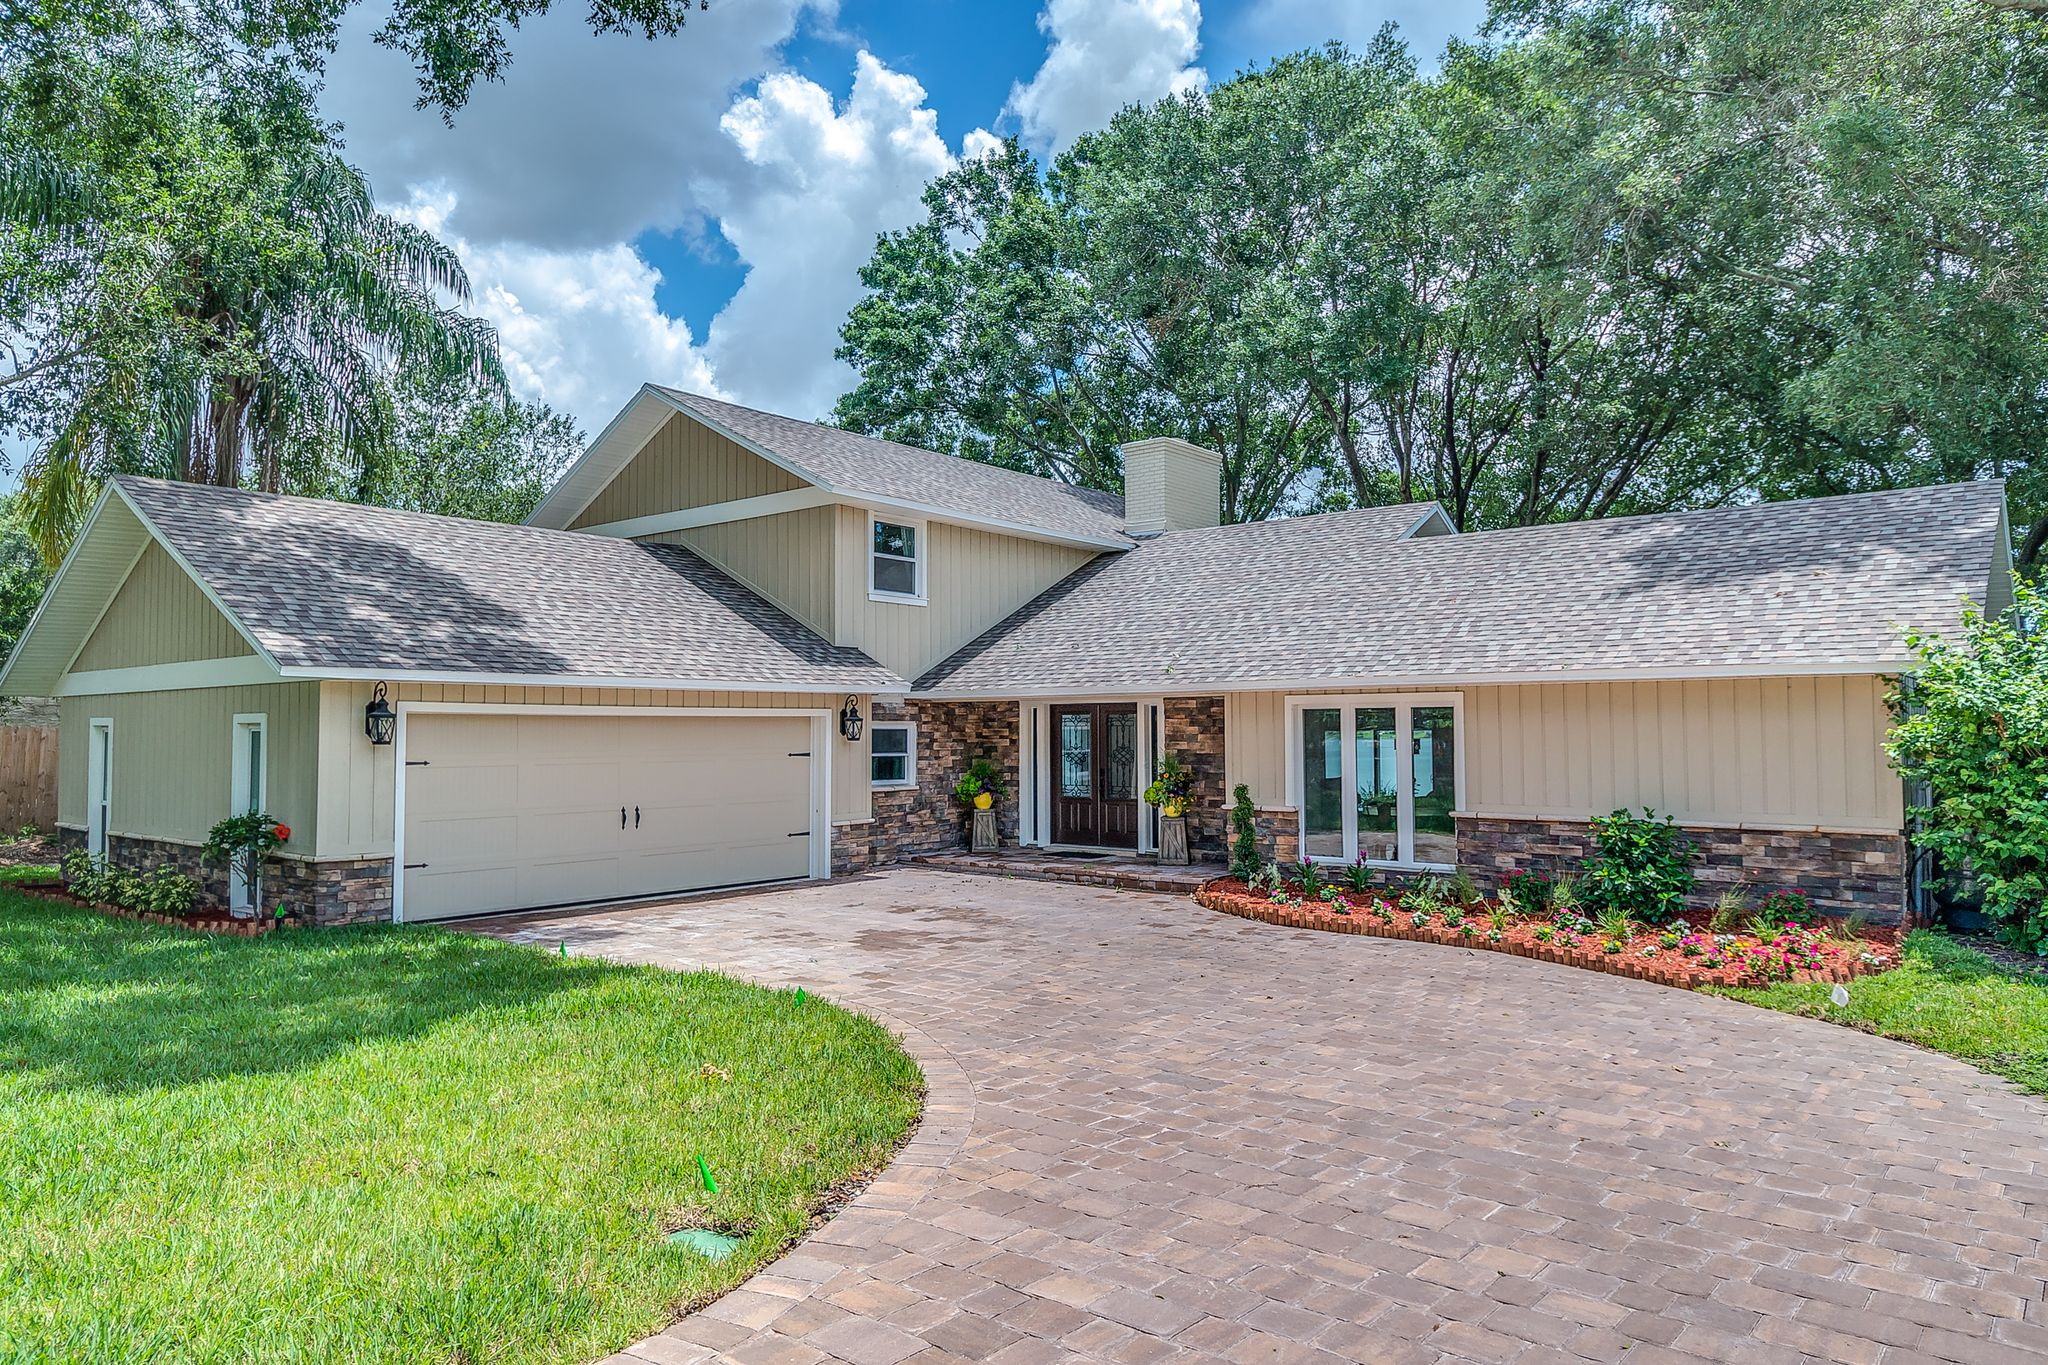 5025 sunrise dr for sale winter haven fl trulia